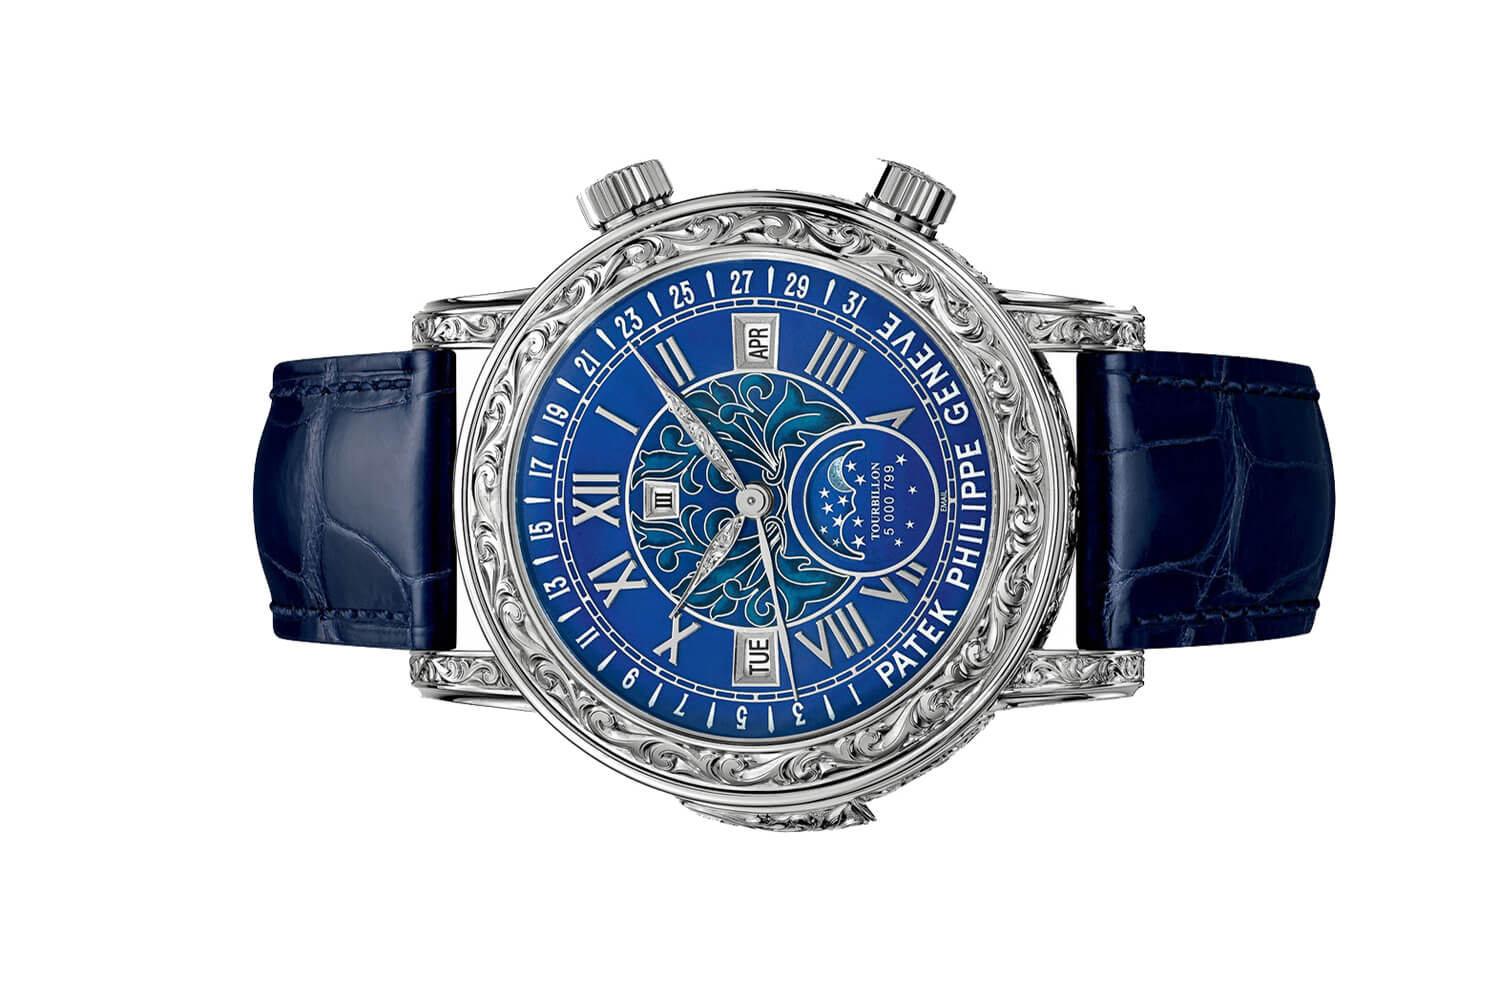 Đồng hồ Patek Philippe Grand Complications 6002G-001